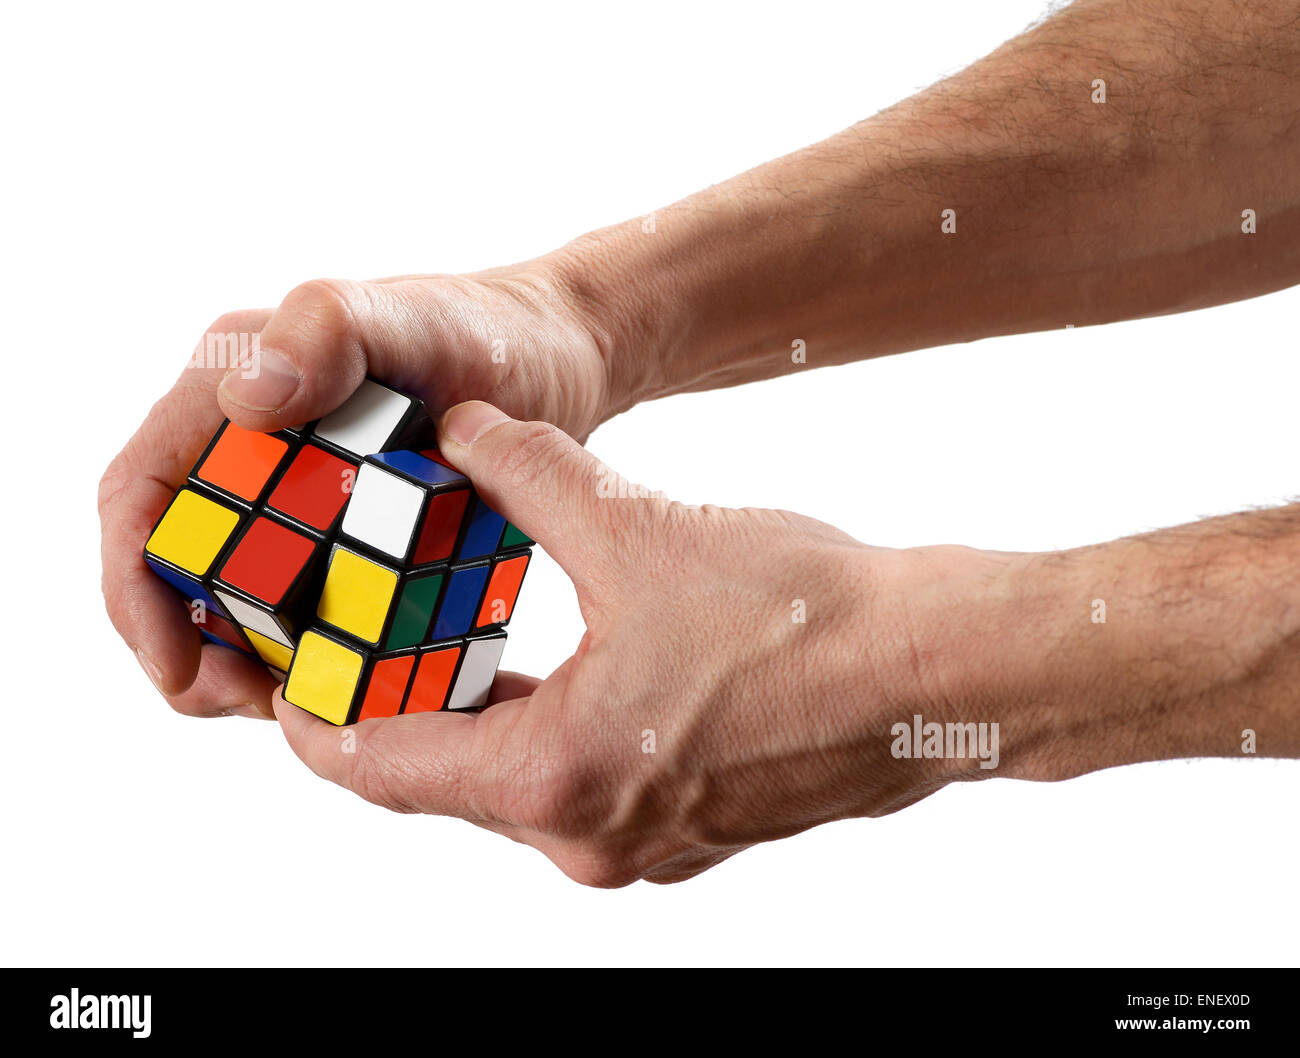 Man twisting a Rubik's cube puzzle with scrambled colors - Stock Image